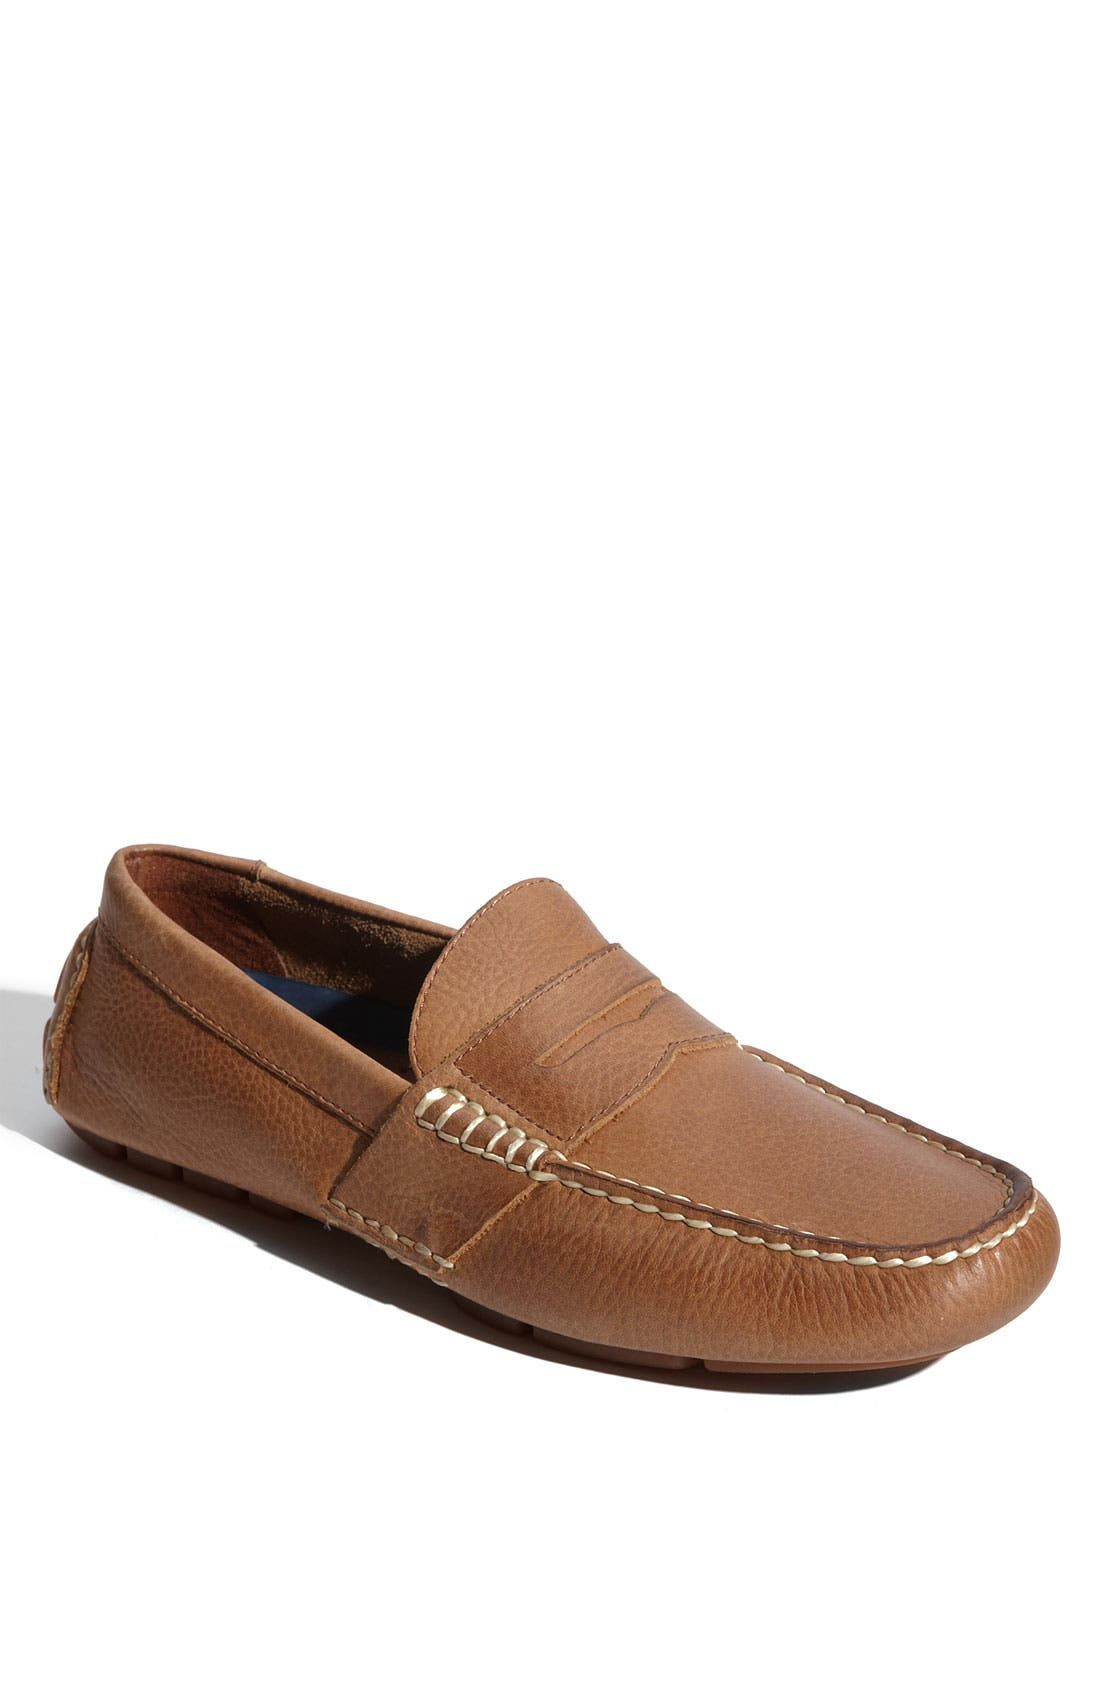 Main Image - Polo Ralph Lauren 'Telly' Driving Loafer